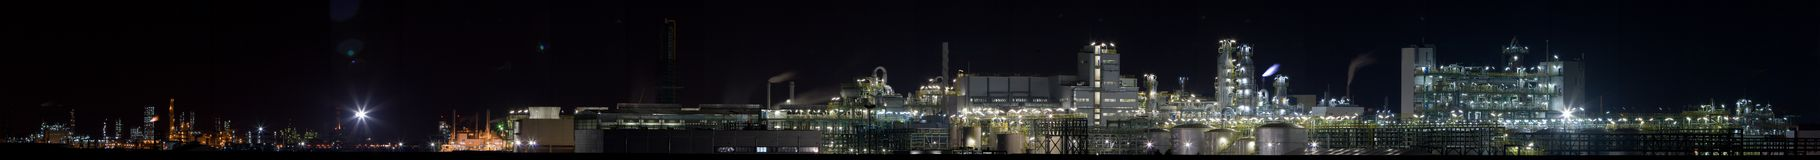 Chemical plant in night(Panoramic View 3)